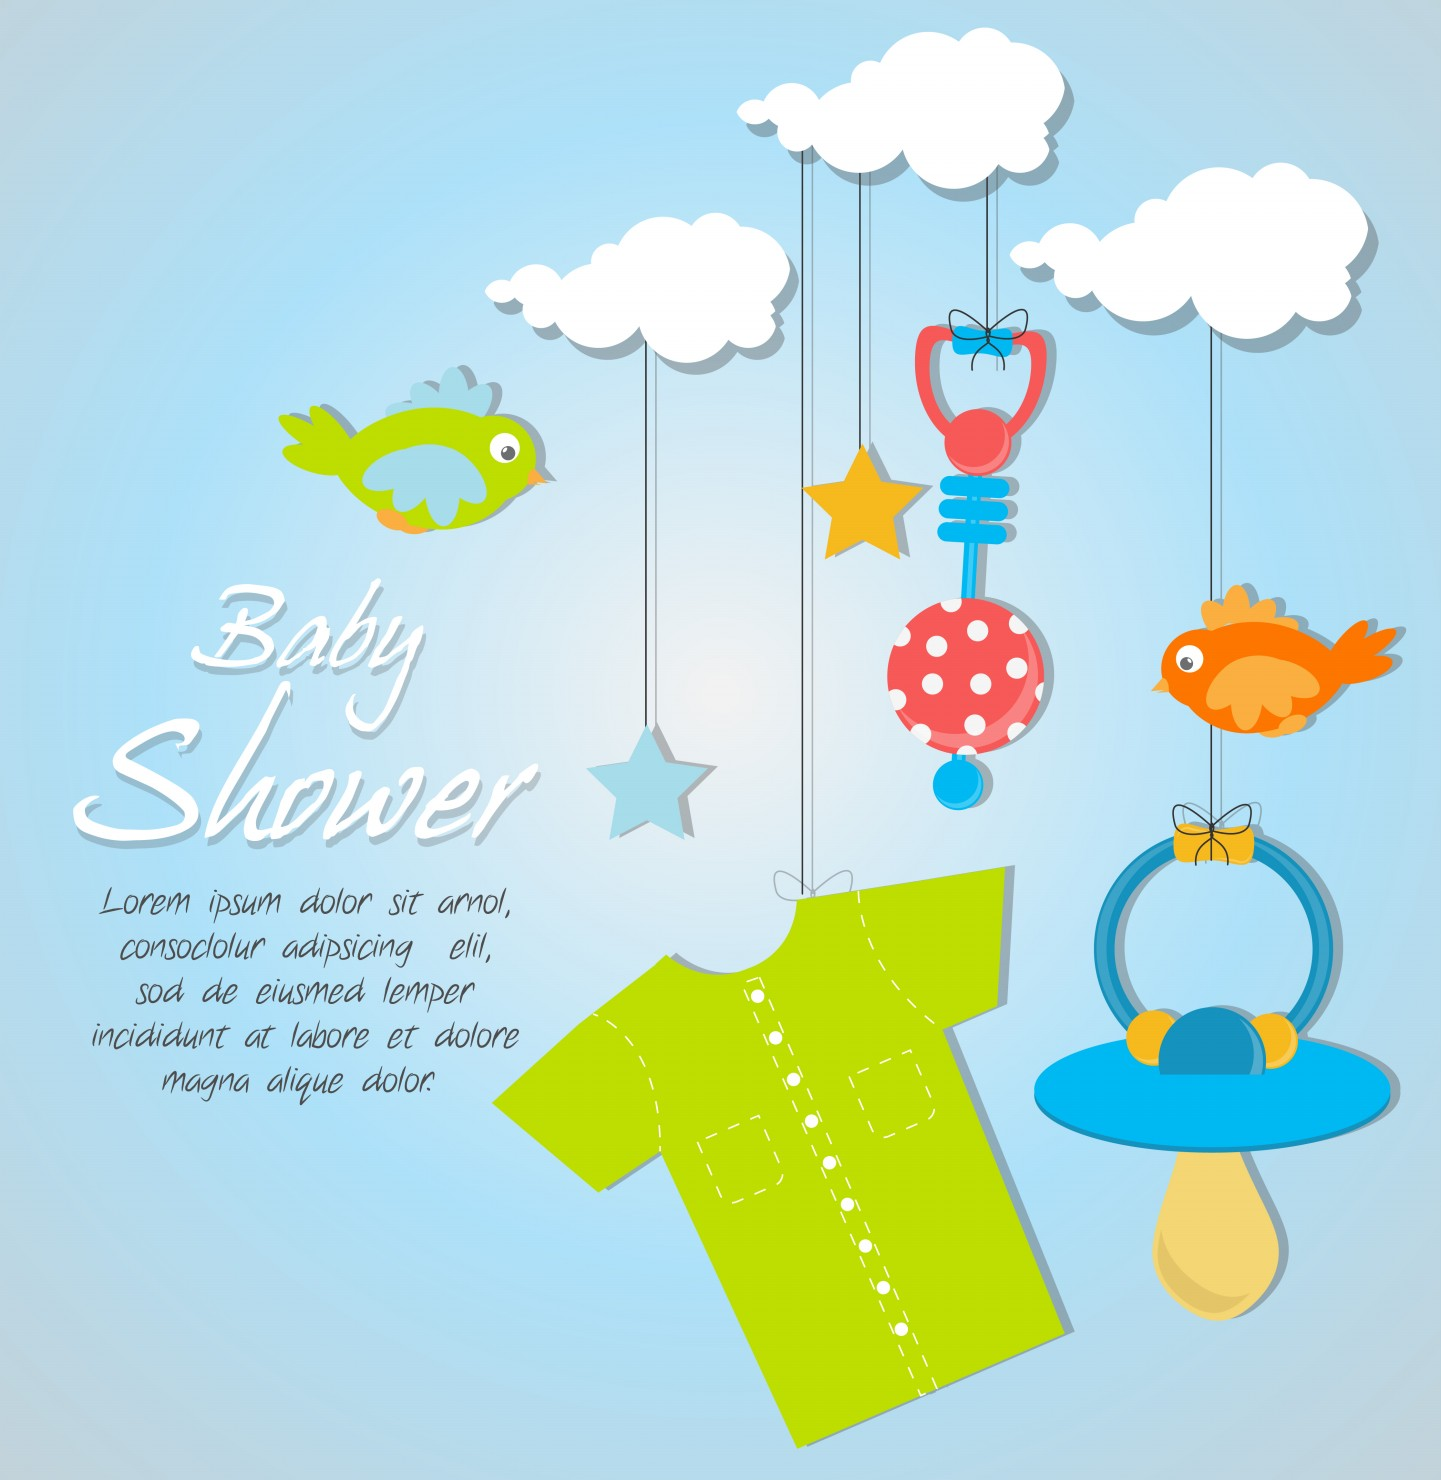 Indian Baby Shower Invitations Part - 41: Baby Shower Card